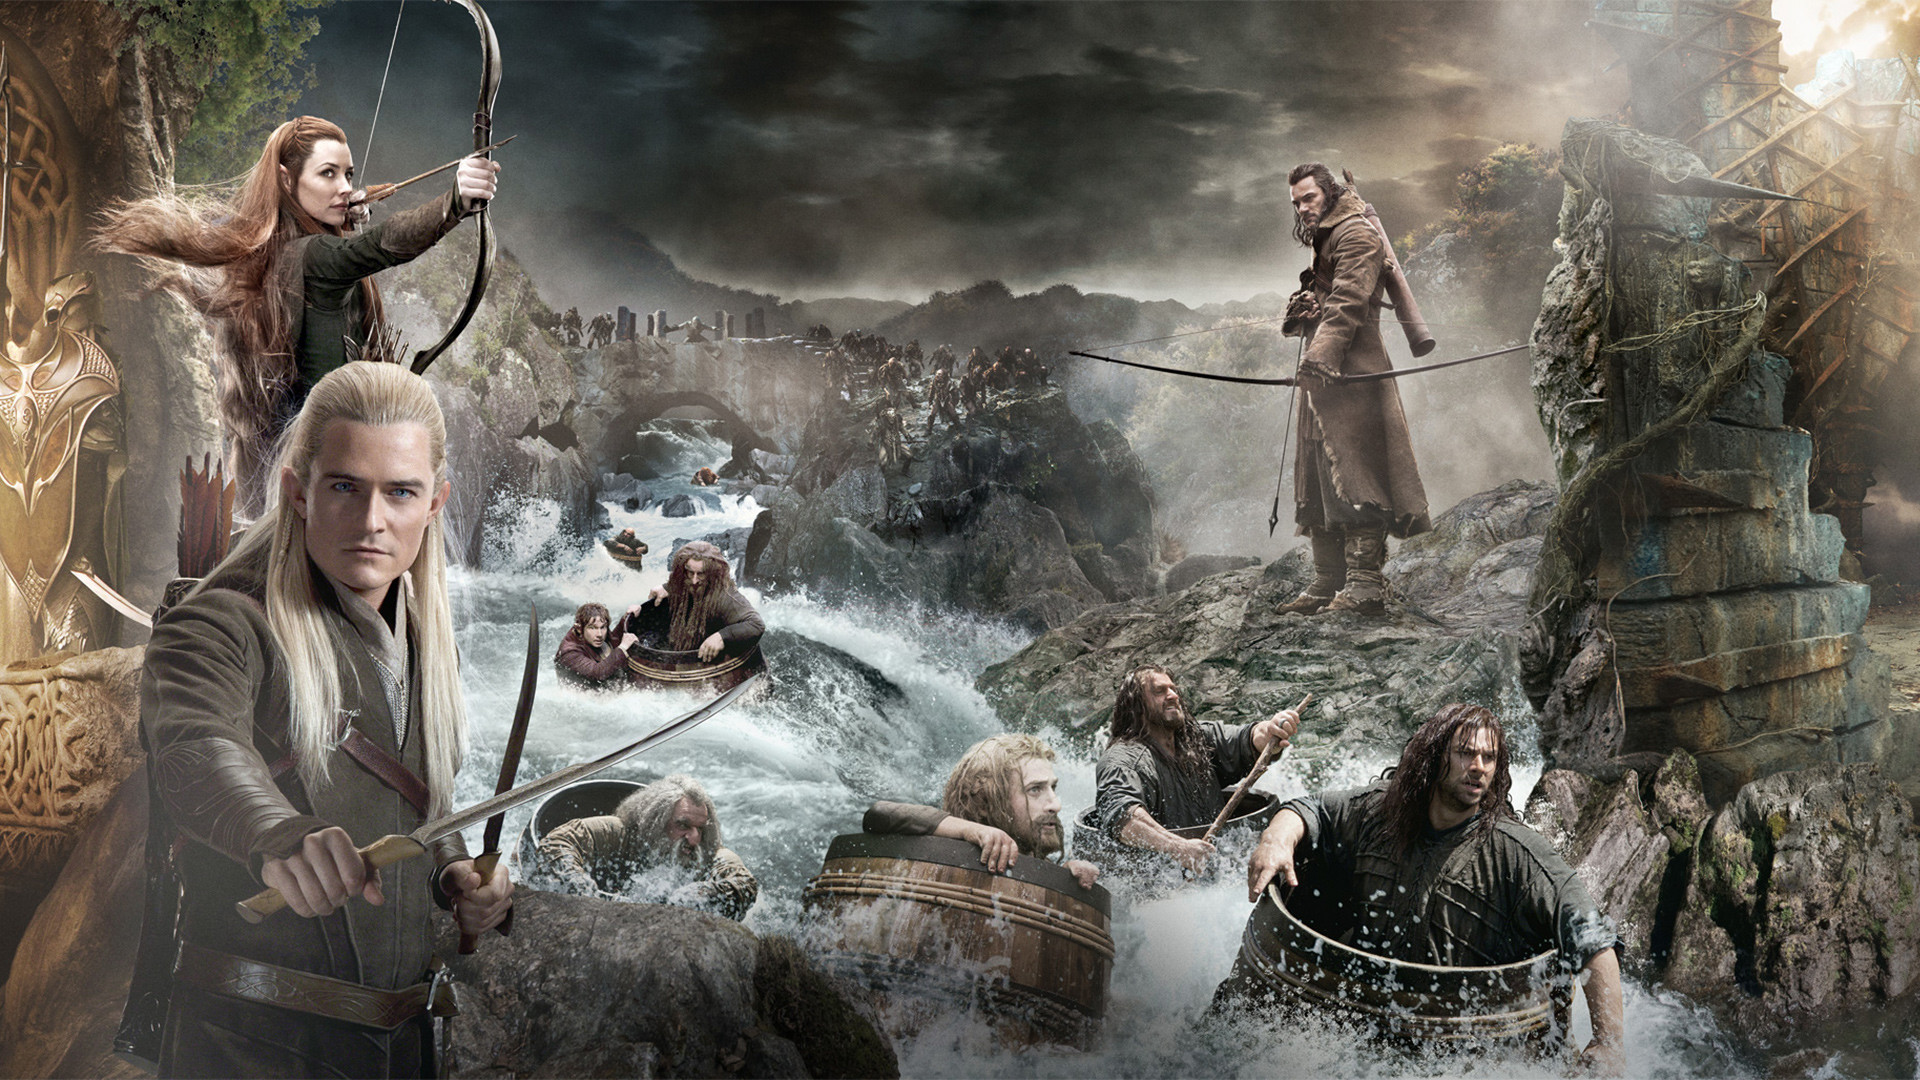 The Hobbit: The Desolation of Smaug Characters desktop PC and Mac  wallpaper